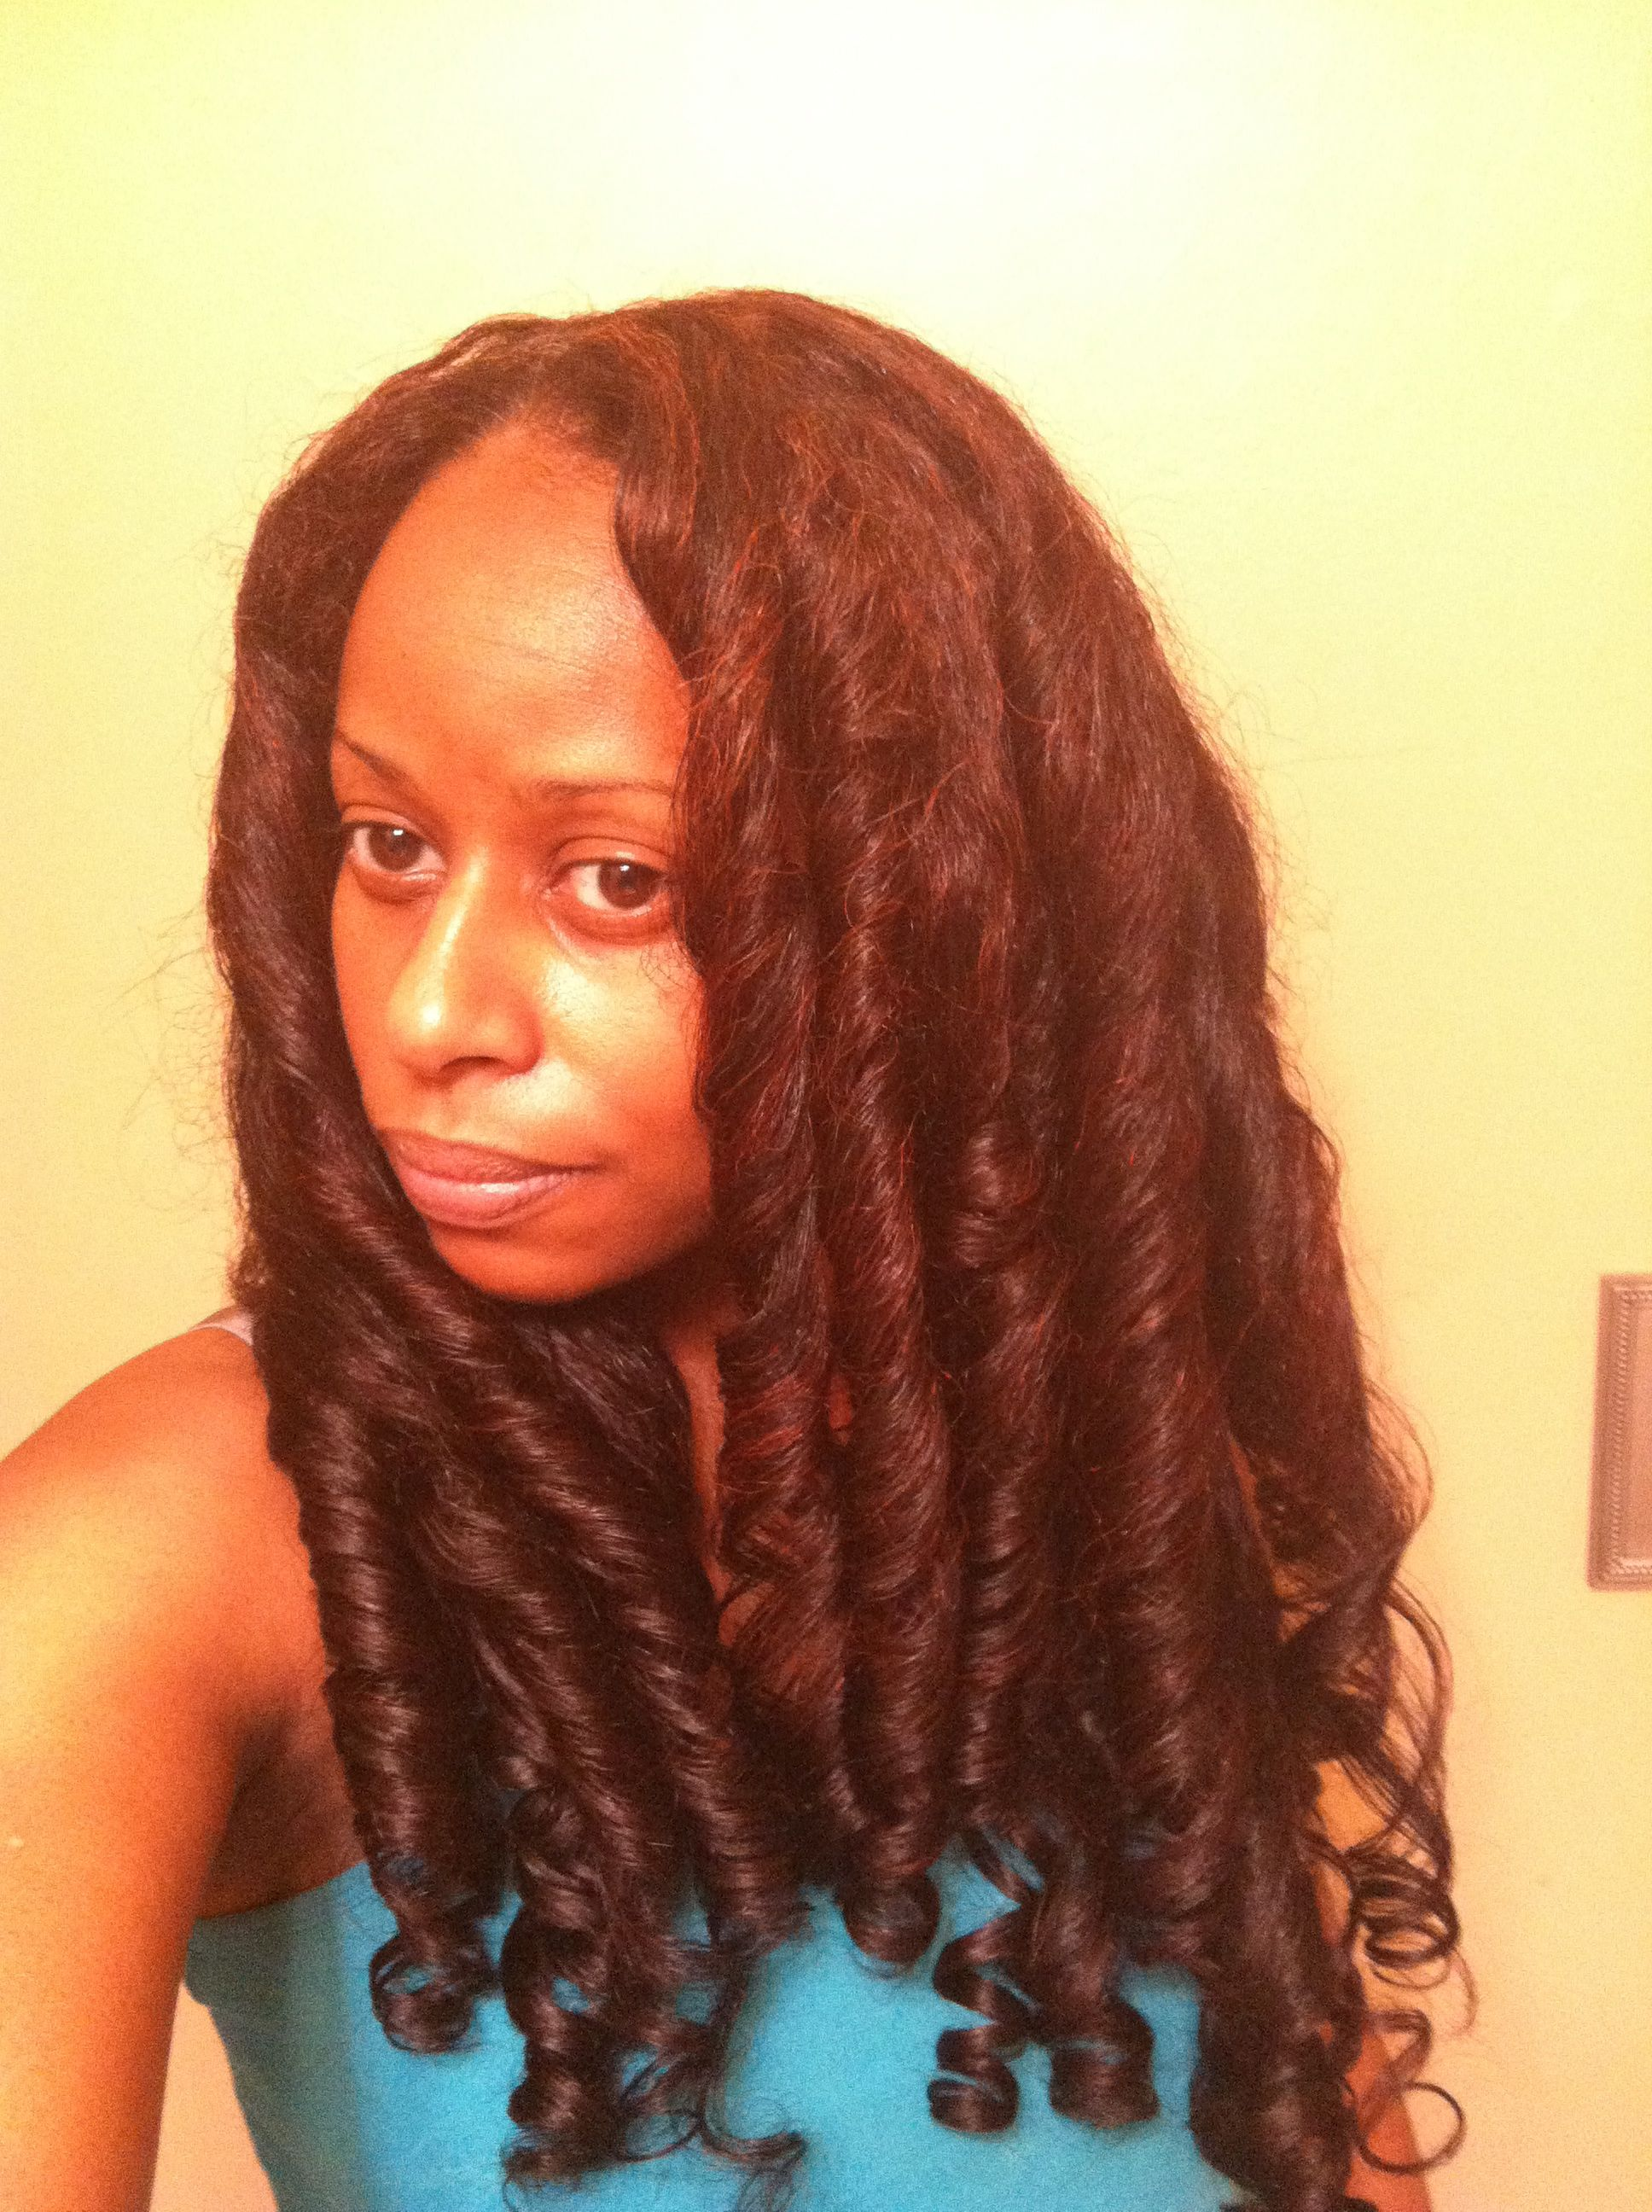 Straight perm damage - I Ve Become A Straight Hair Natural Without Heat Damage Hairscapades